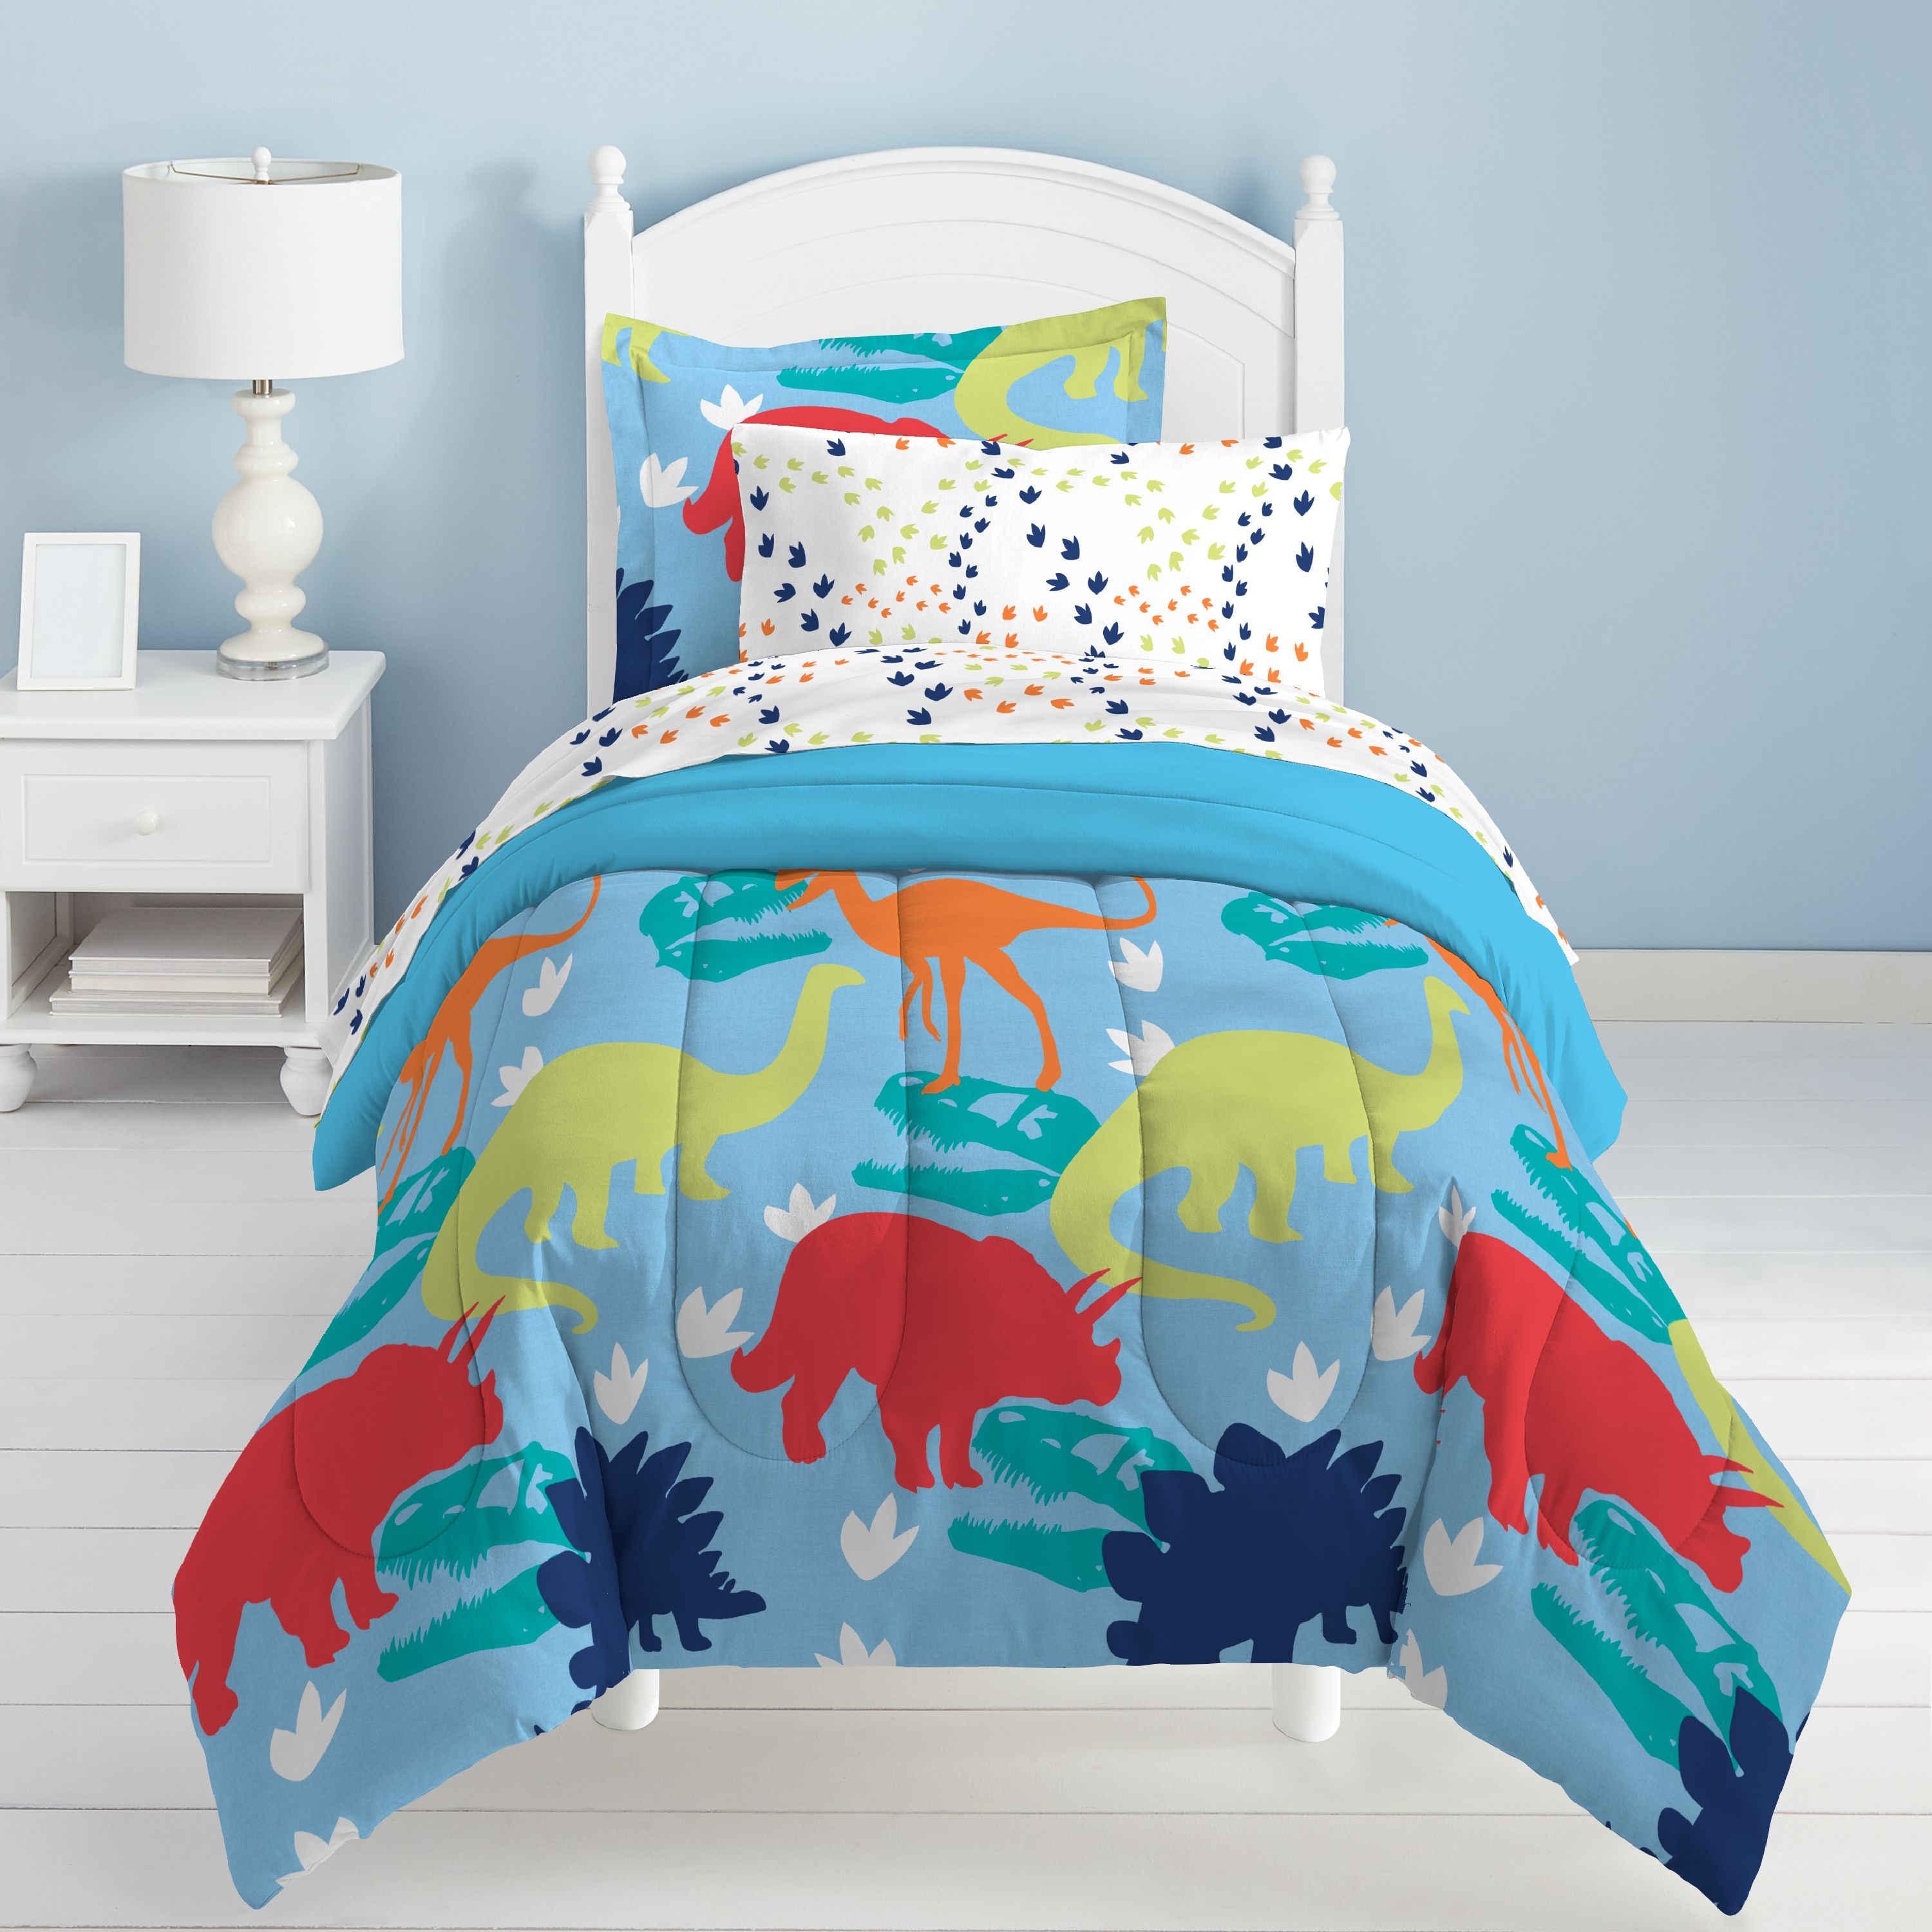 Dream Factory Dinosaur Bed in a Bag Bedding Set